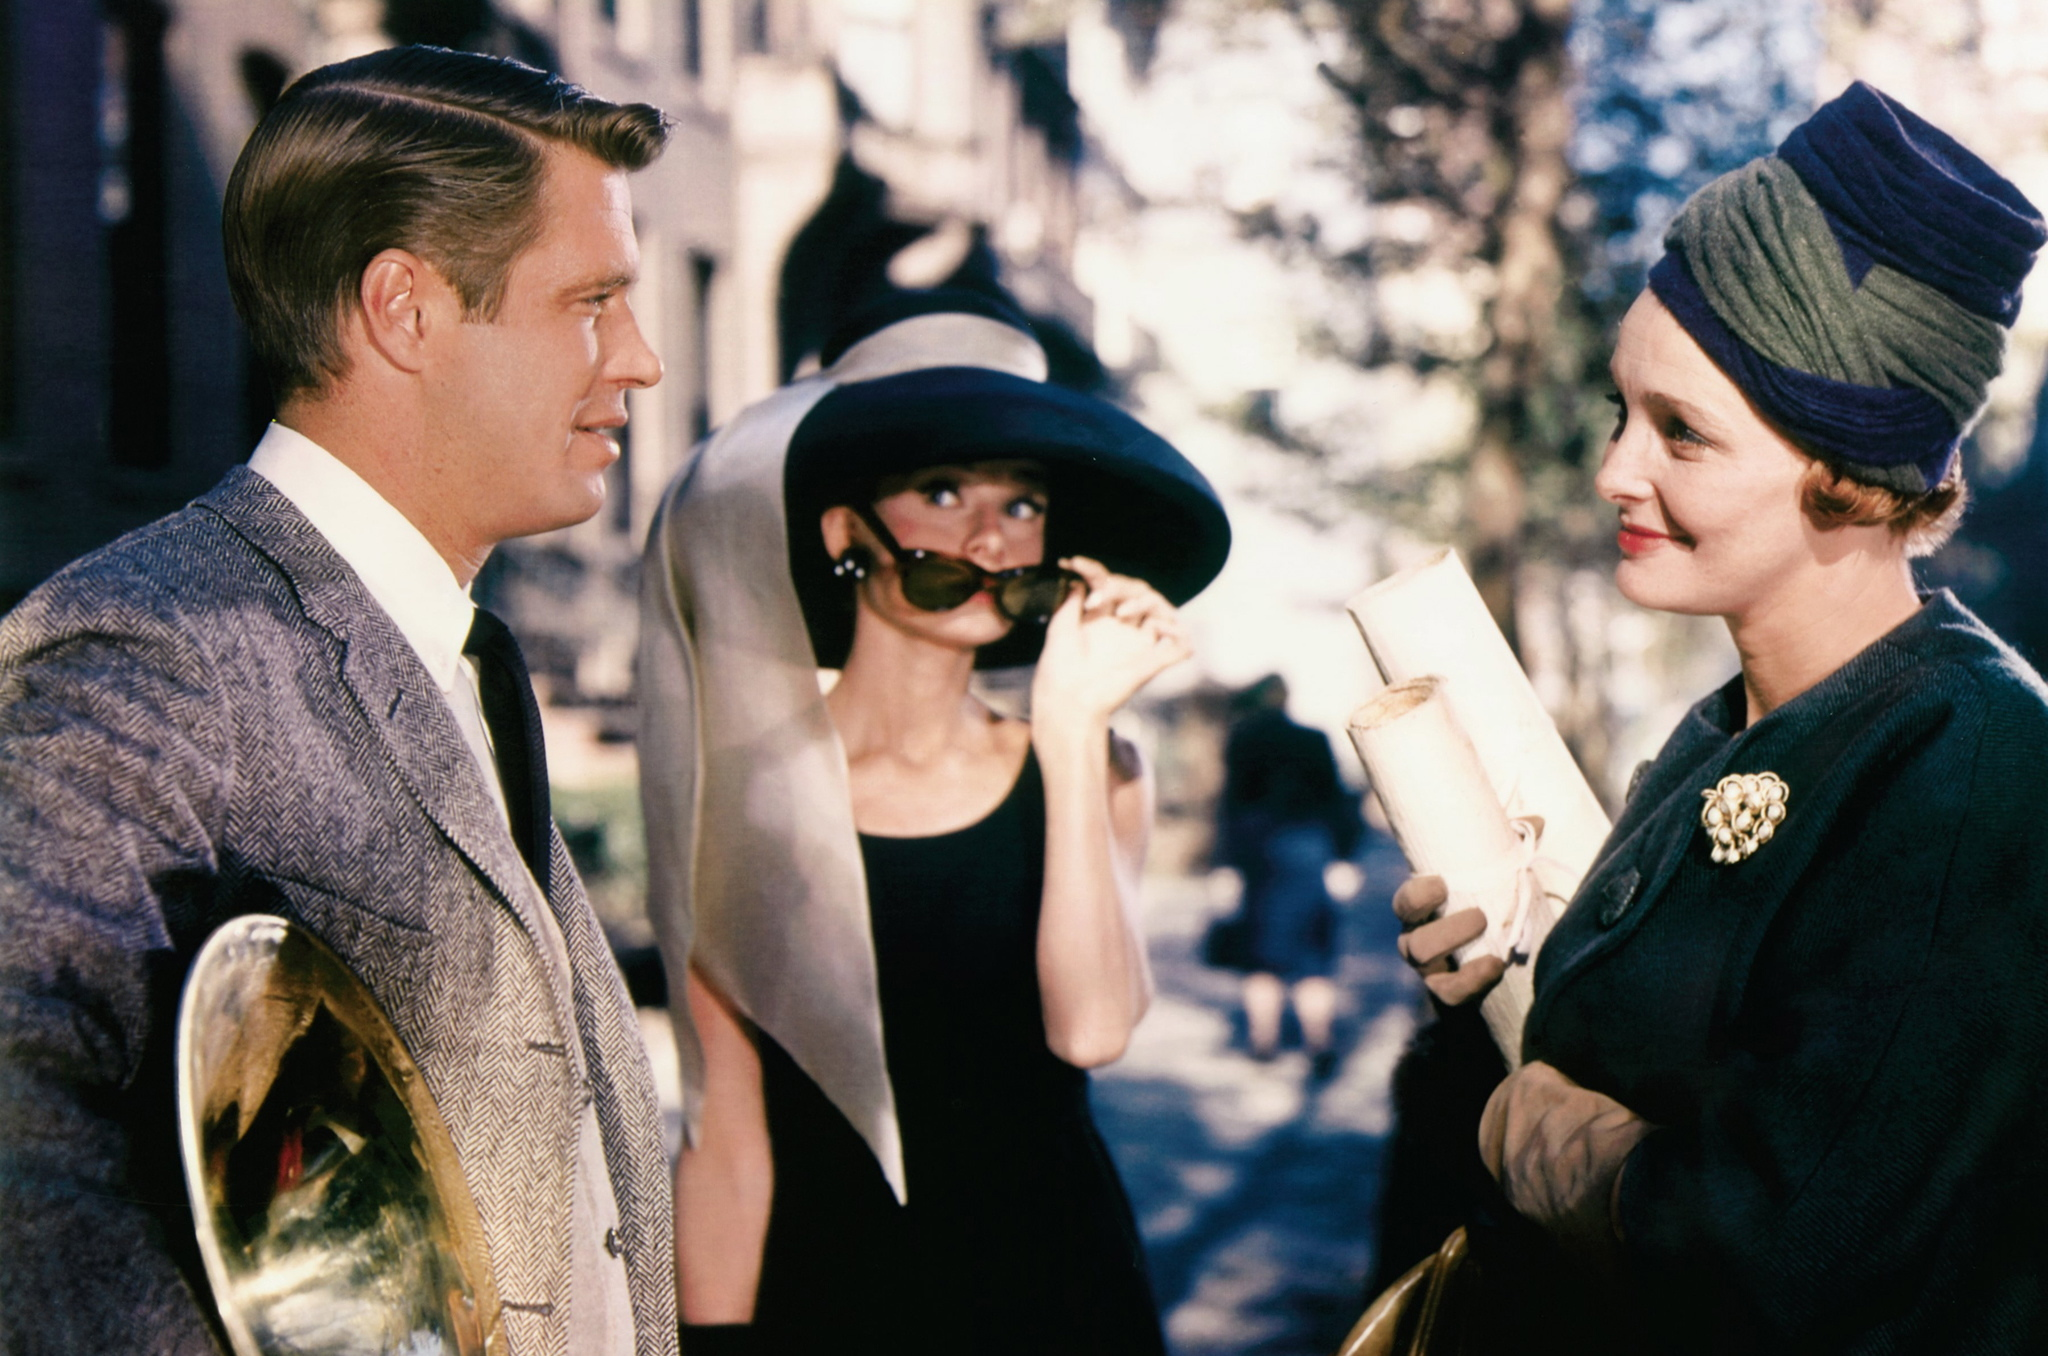 Romantic movie: Breakfast at Tiffany's